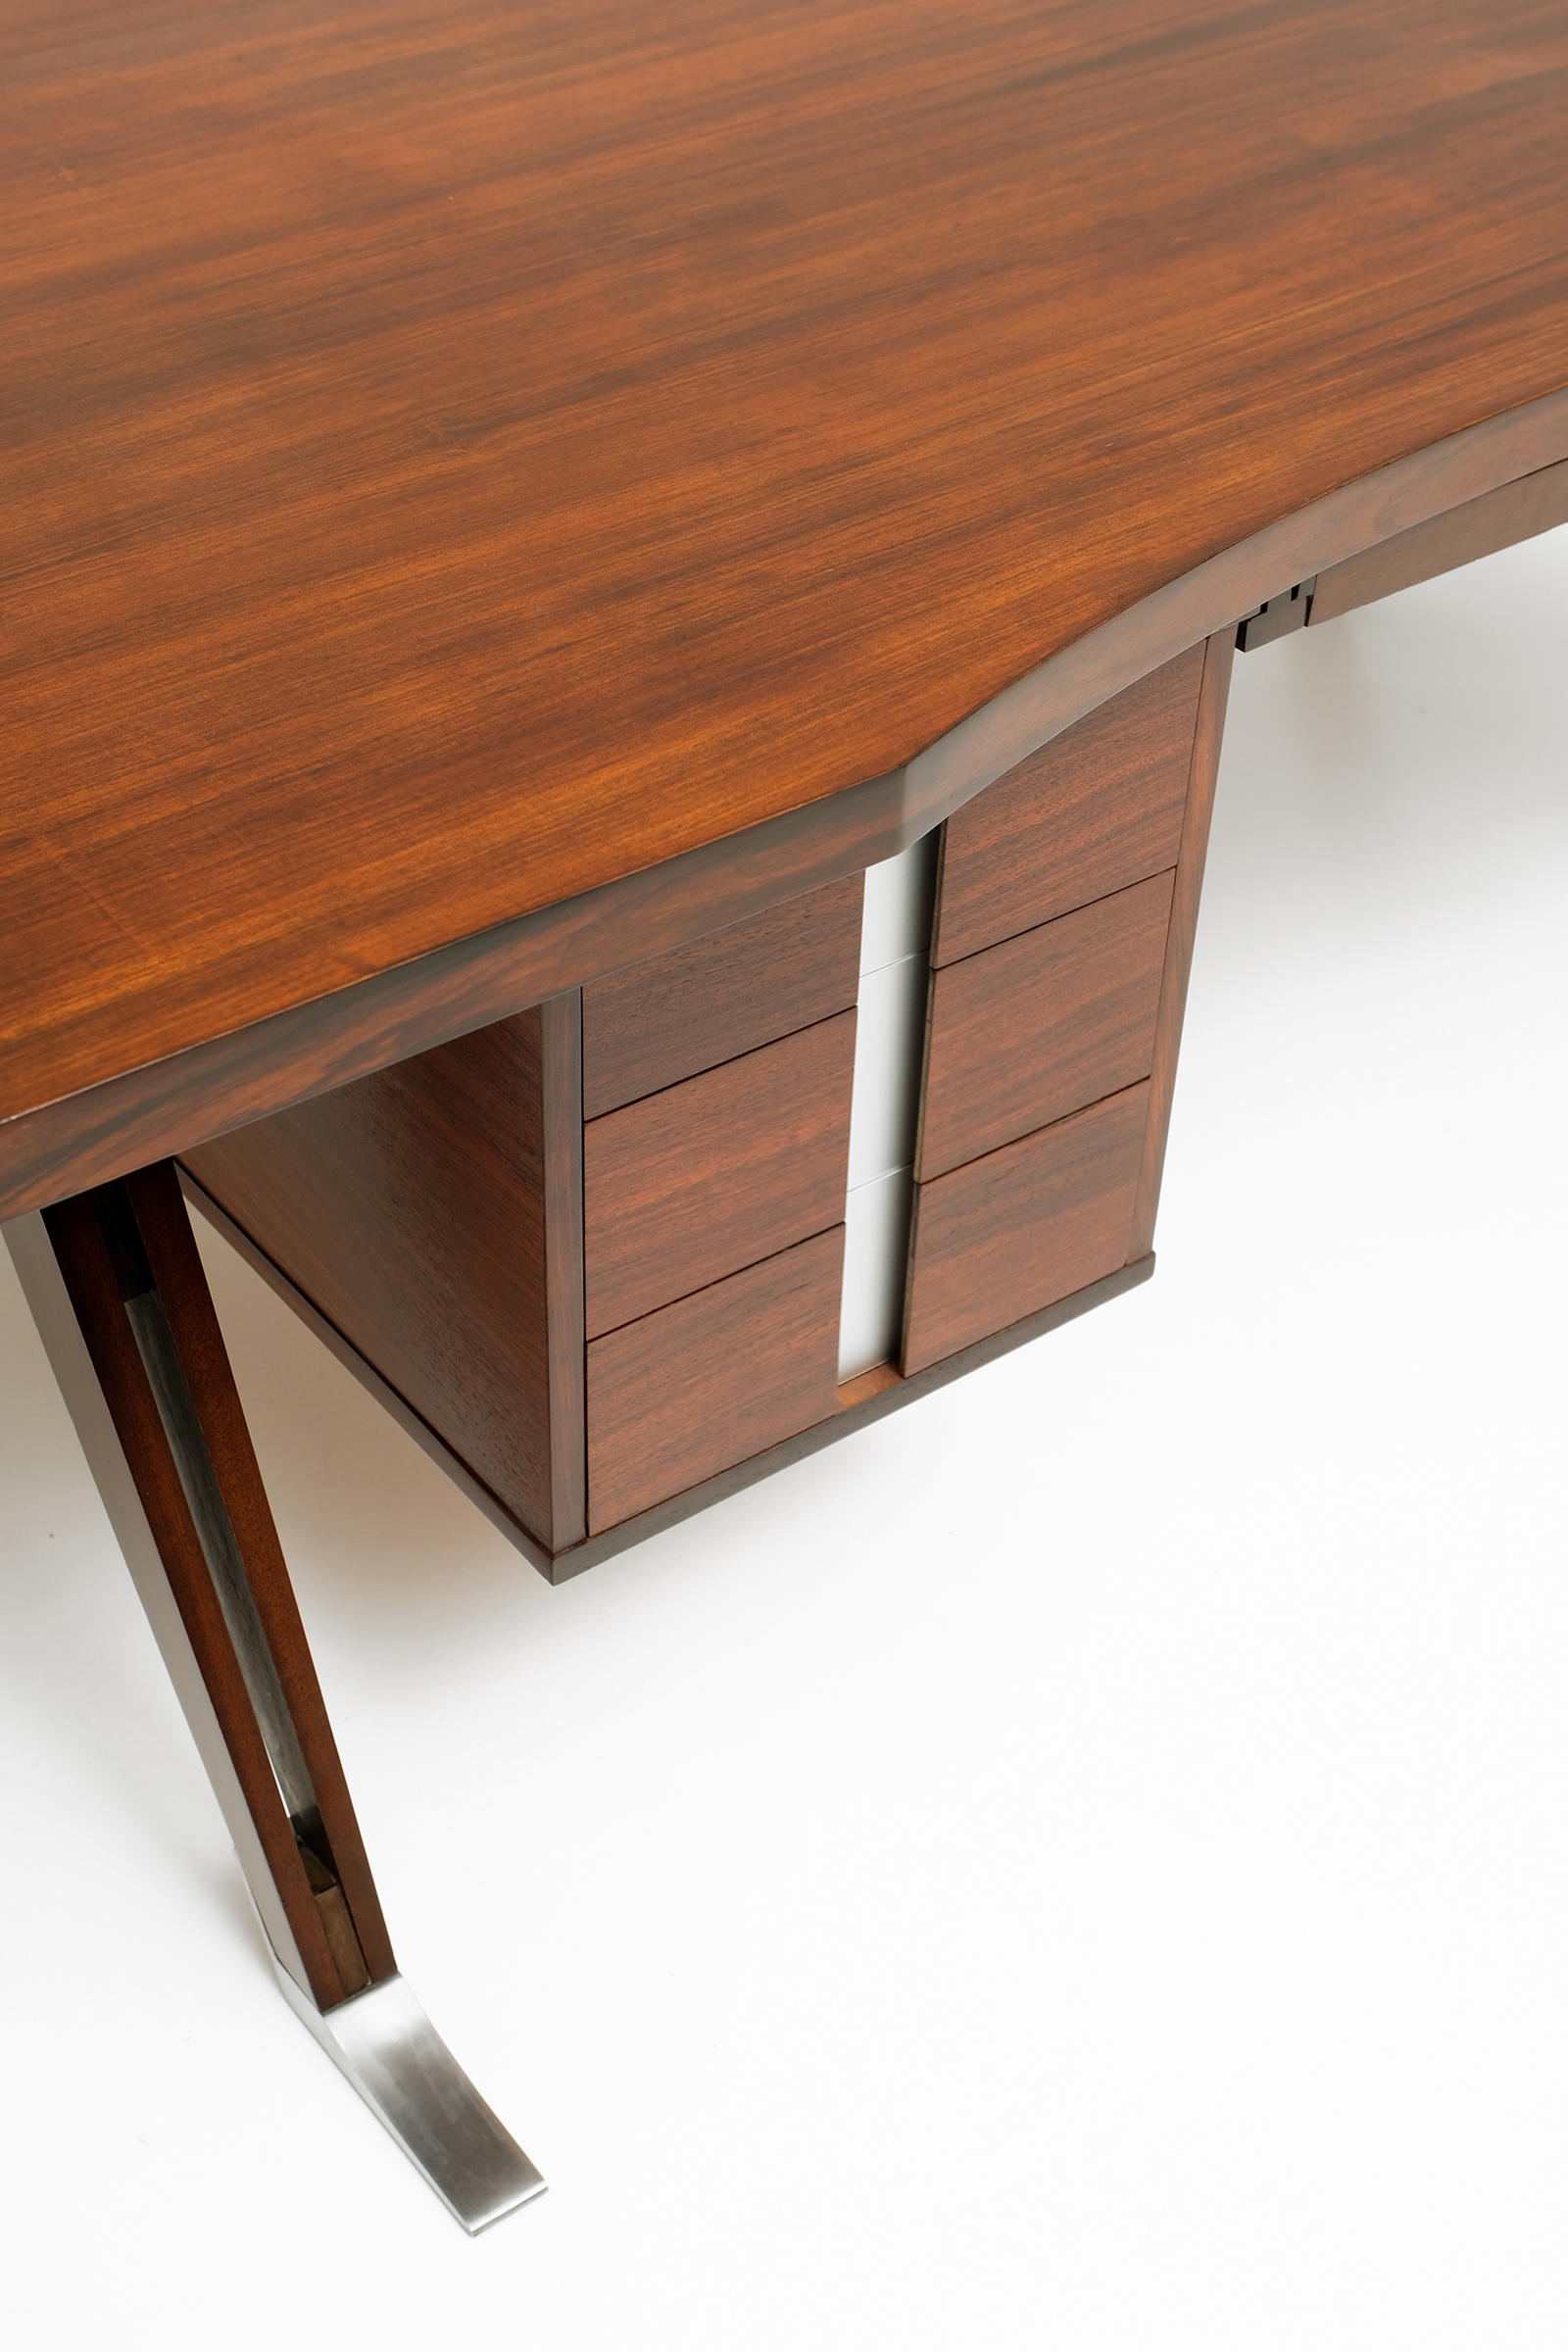 Executive Desk by Ico Parisi for MIM 1958image 4